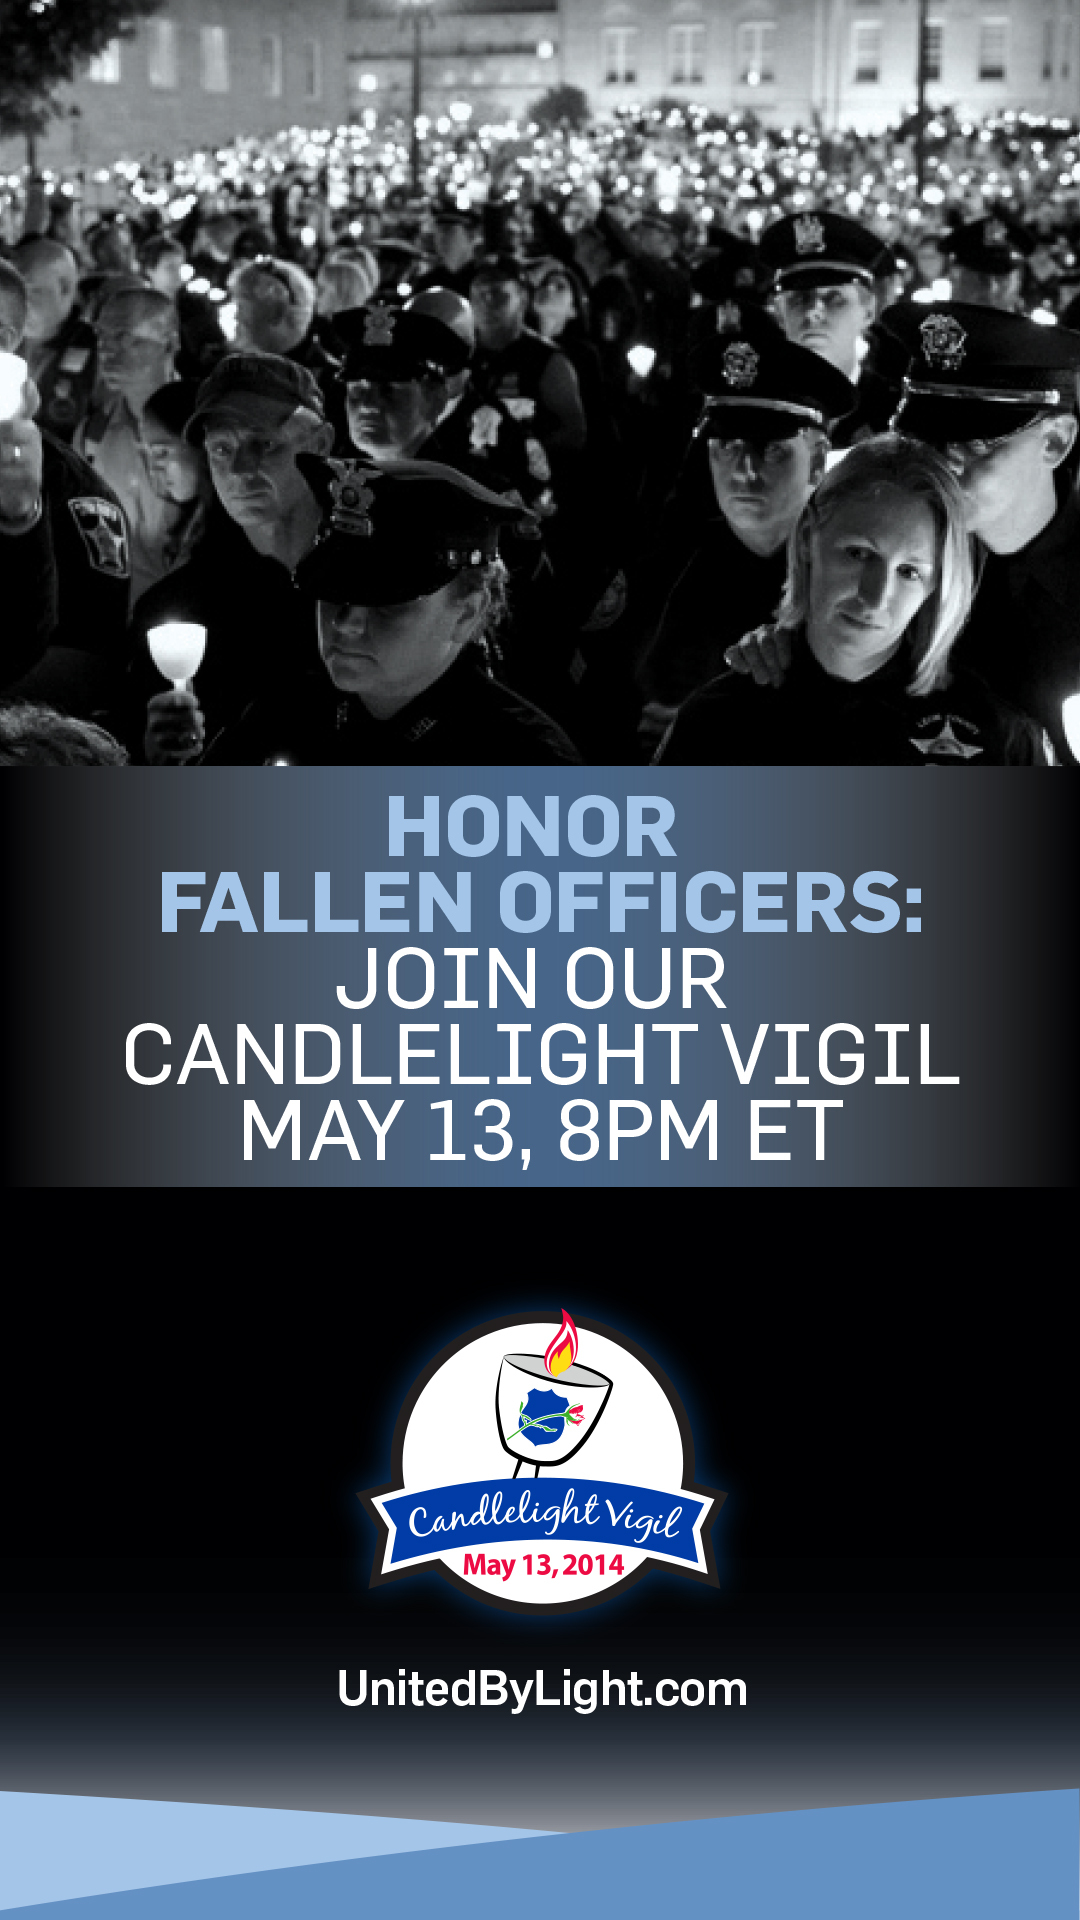 Clear Channel and the National Law Enforcement Officers Memorial Fund invite the public to join in honoring fallen officers through a livestream May 13 from the Officers Memorial in Washington, D.C. (Photo: Business Wire)